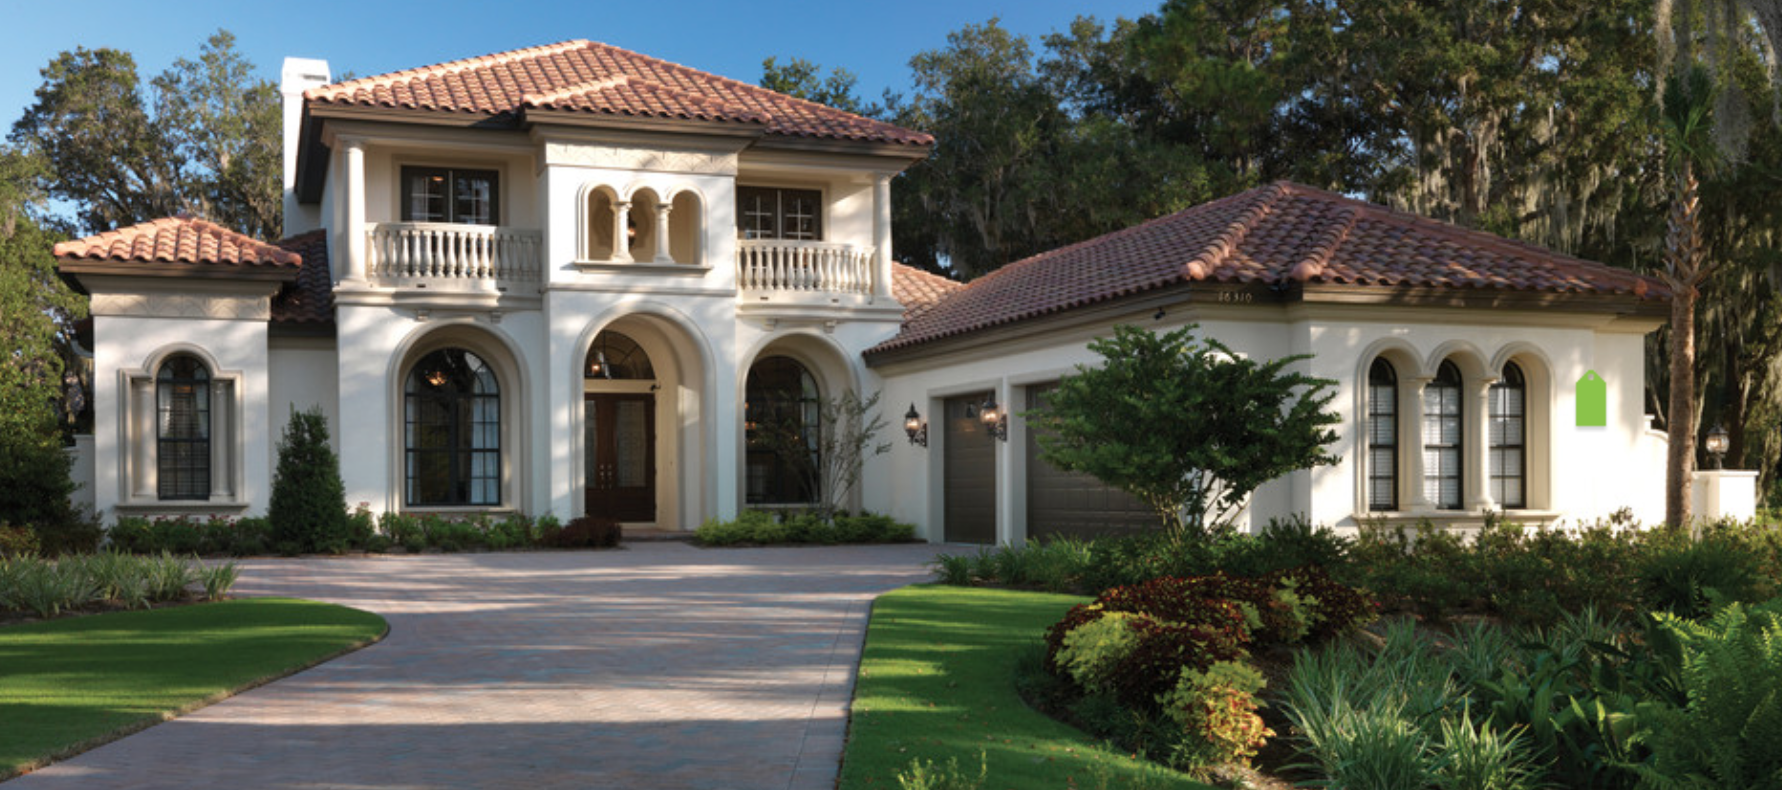 Exterior Color: Sherwin Williams SW 7558 Medici Ivory Trim Color: SW 2822  Downing Sand